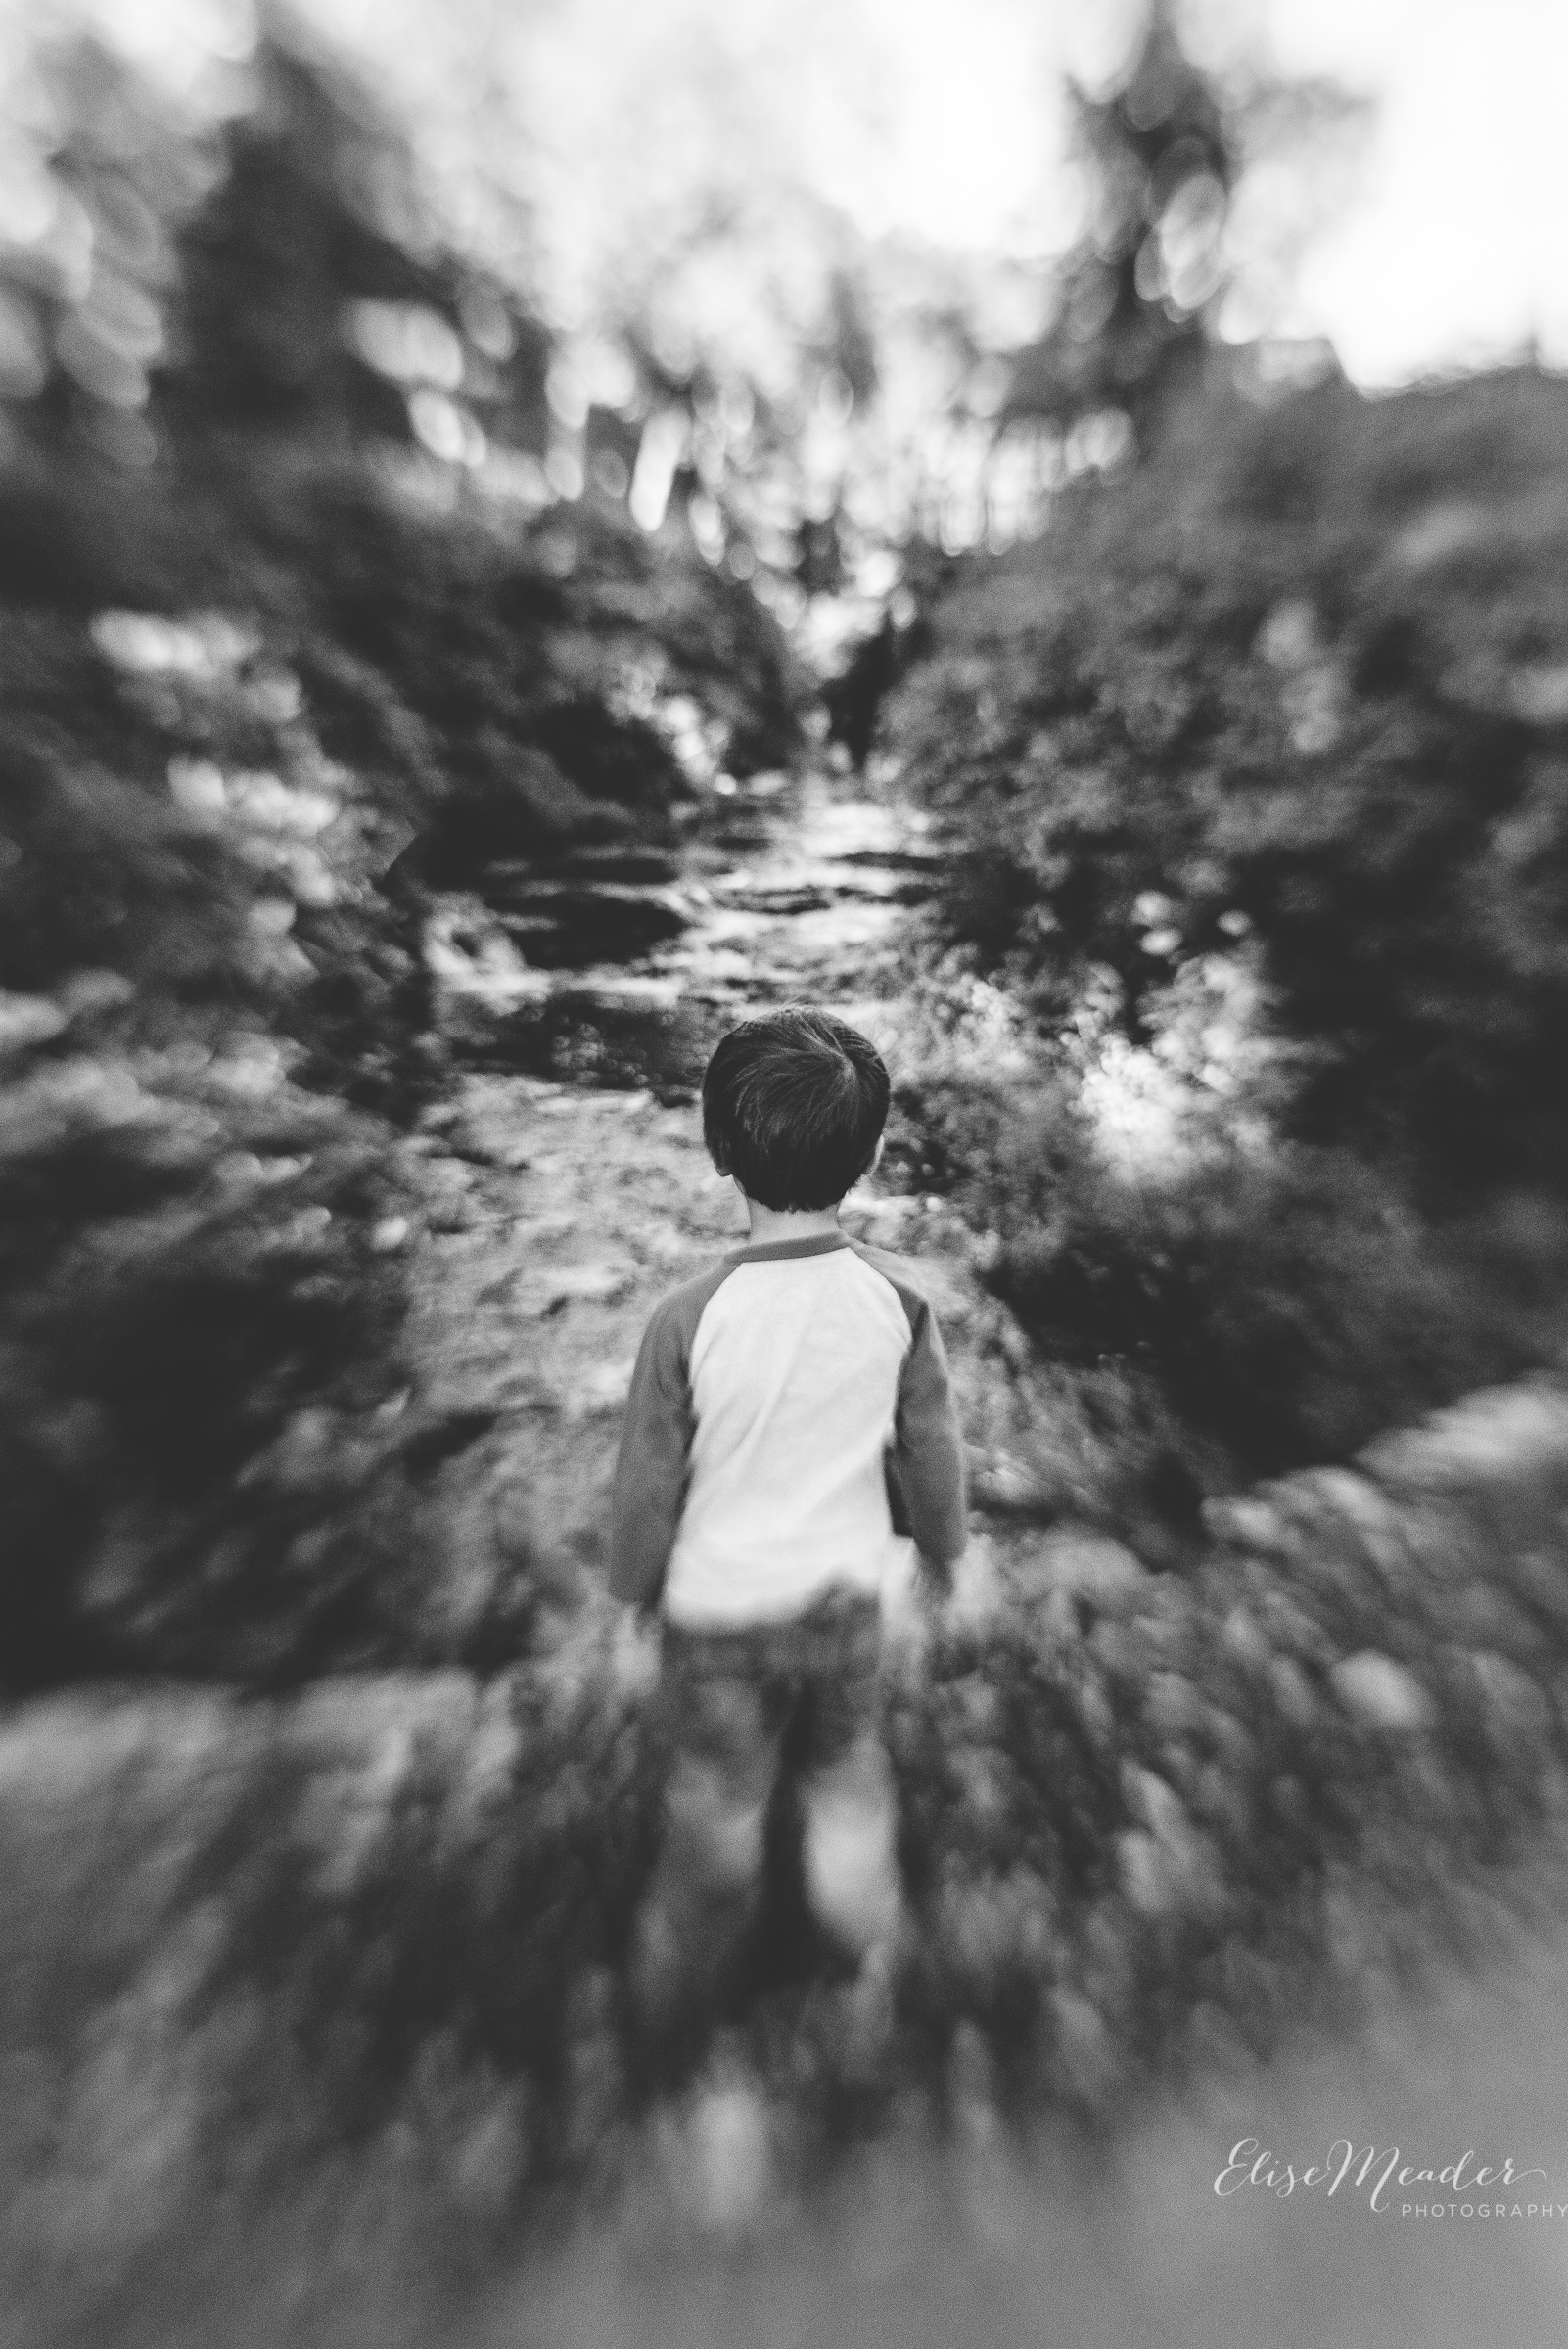 Just a boy admiring a waterfall... the lensbaby makes everything look extraordinary.